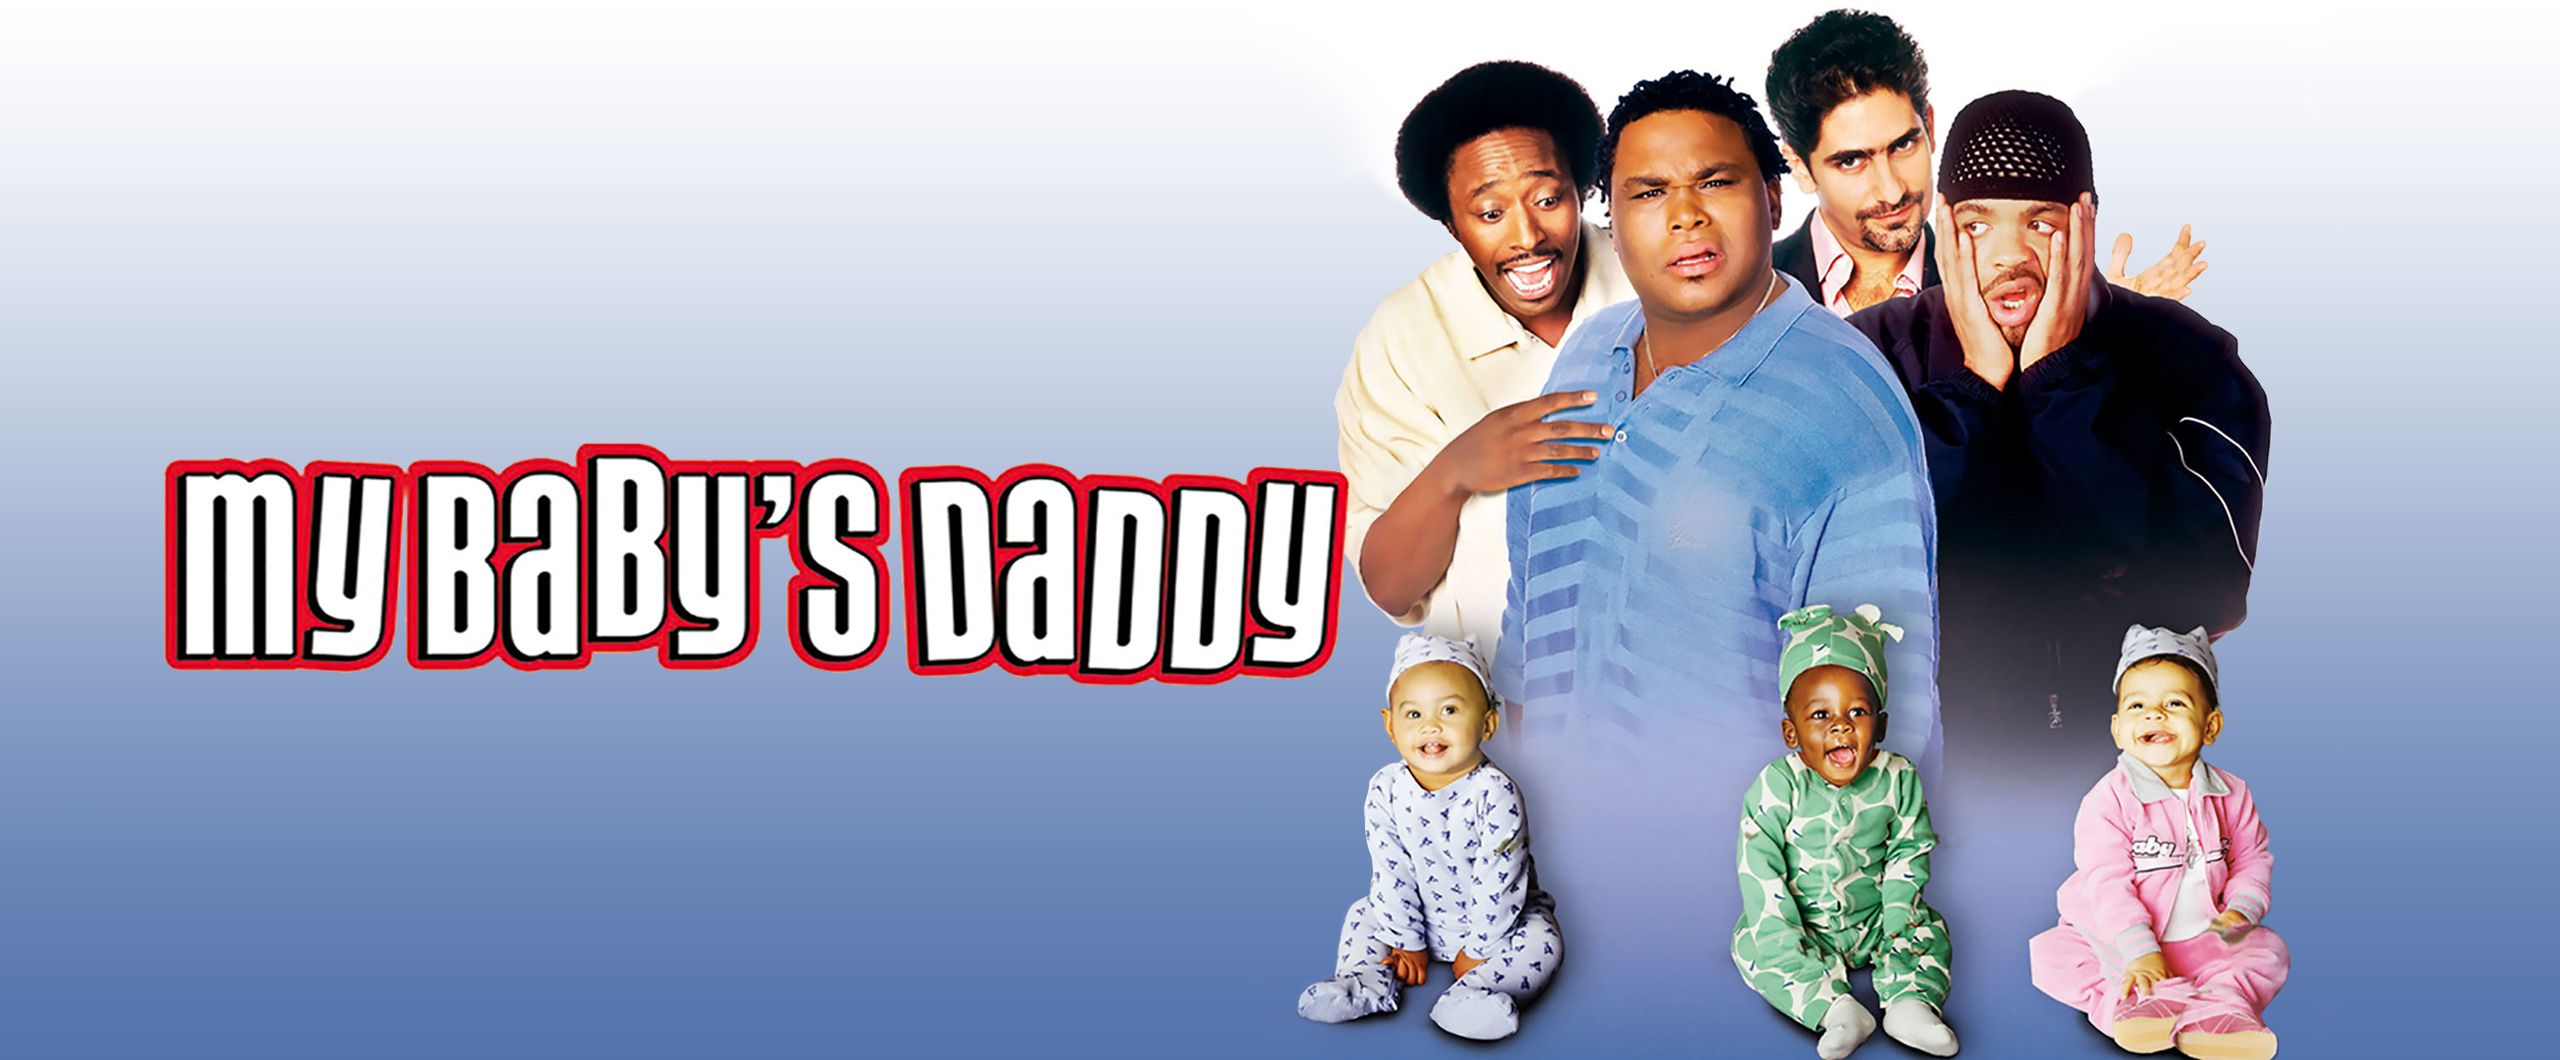 My Baby's Daddy_ Tuesday